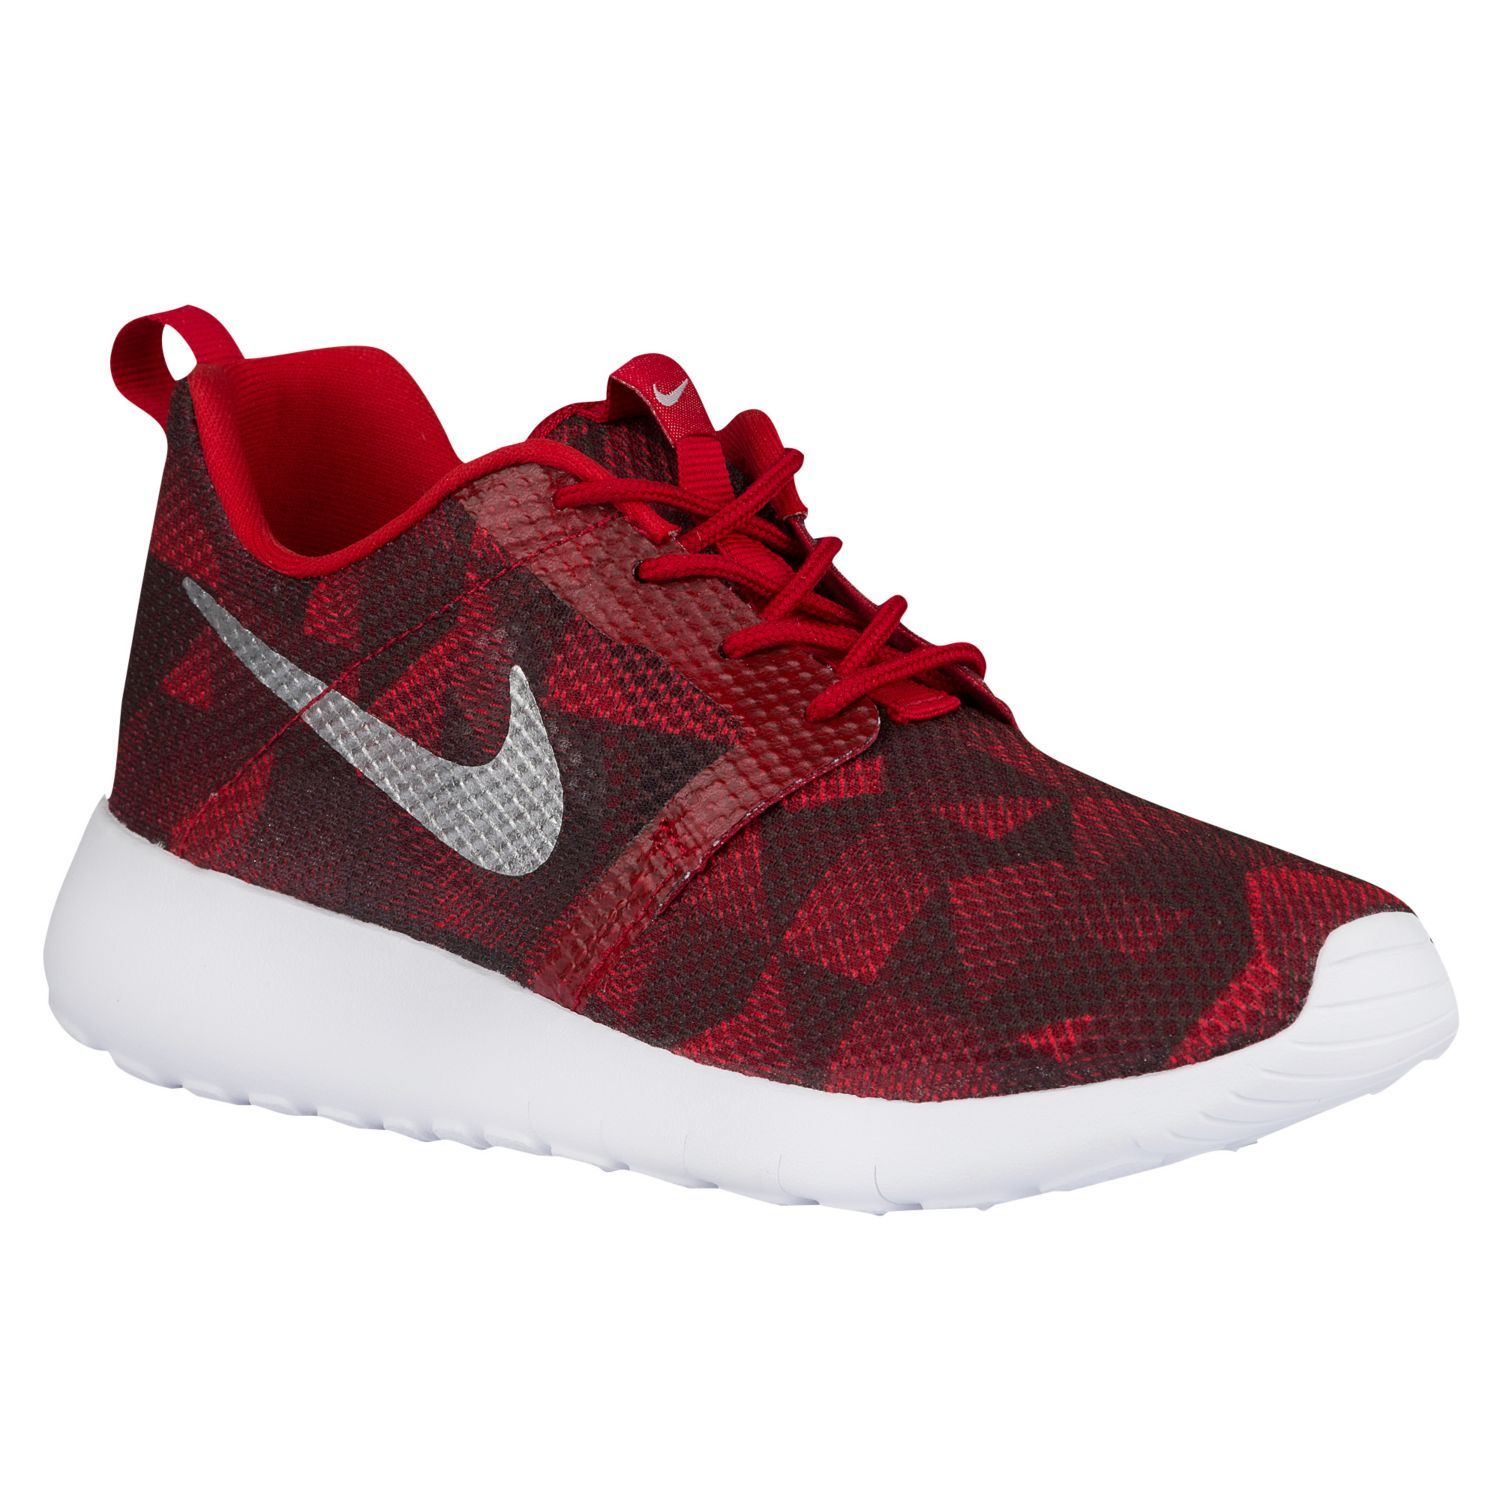 688290fd708 Nike Roshe One Flight Weight - Boys  Grade School - Running - Shoes - Gym